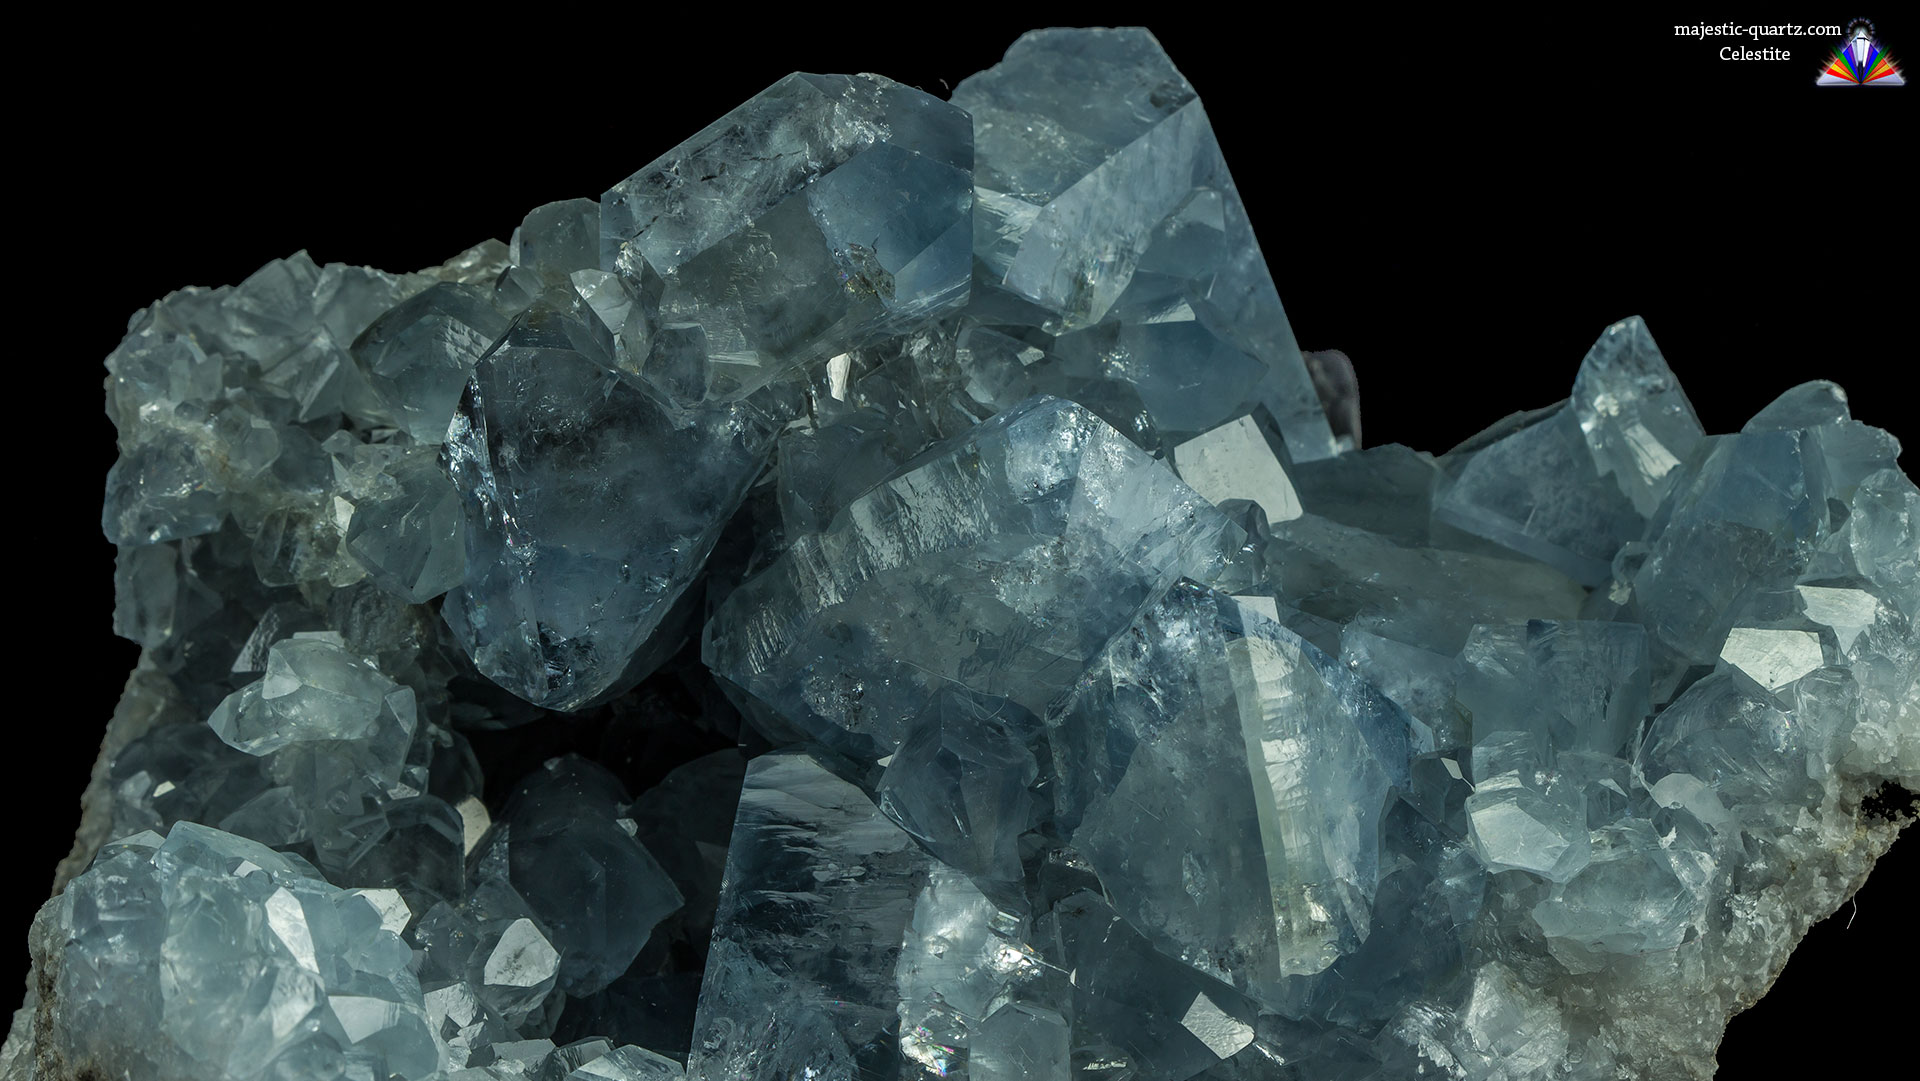 Celestite Crystal Cluster - Photograph by Anthony Bradford